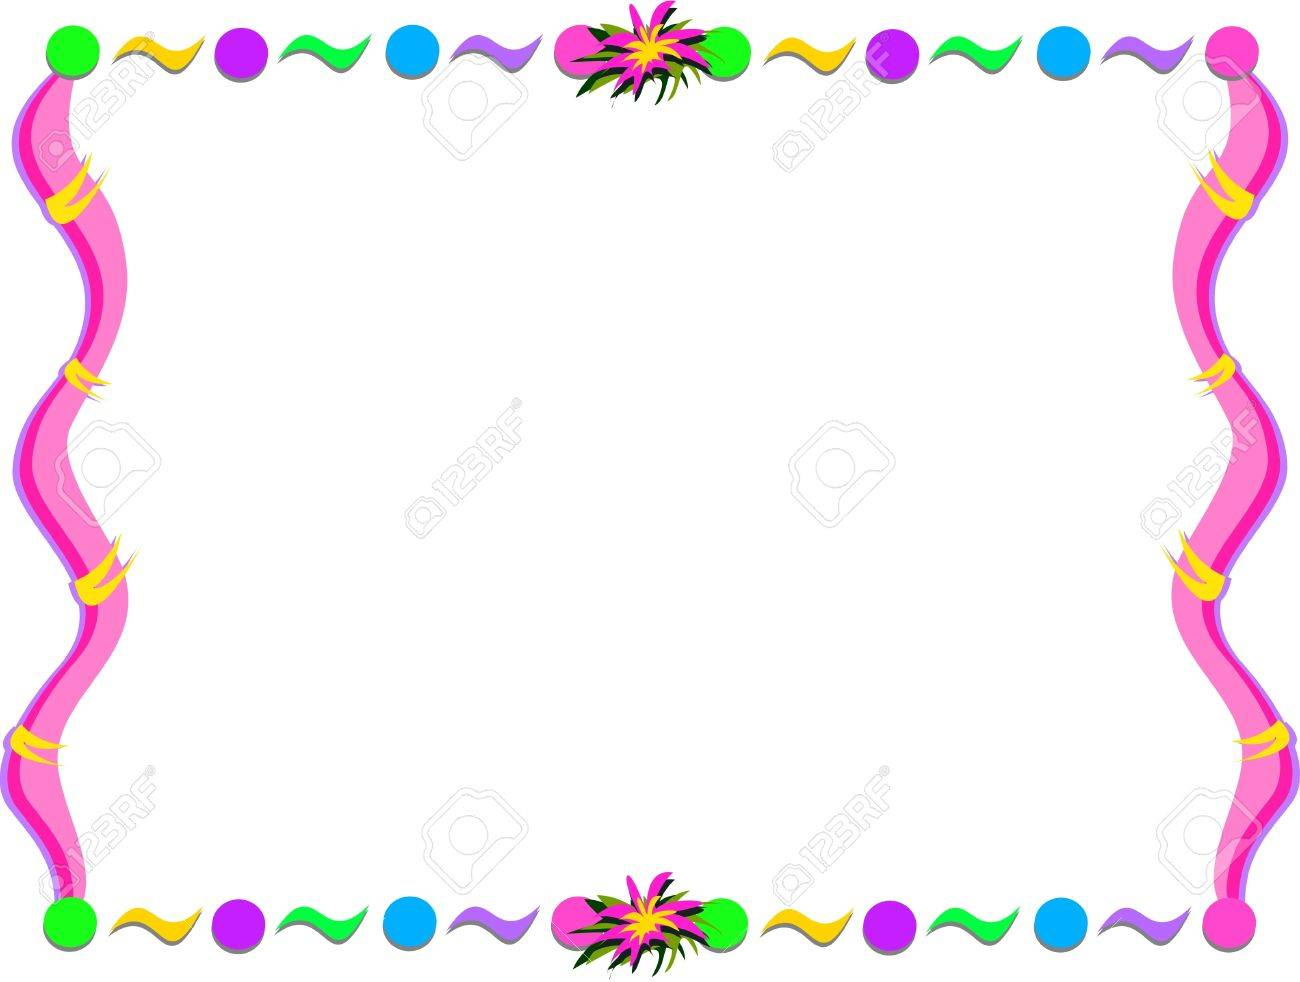 Whimsical Frame With Shapes And Flower Royalty Free Cliparts ...